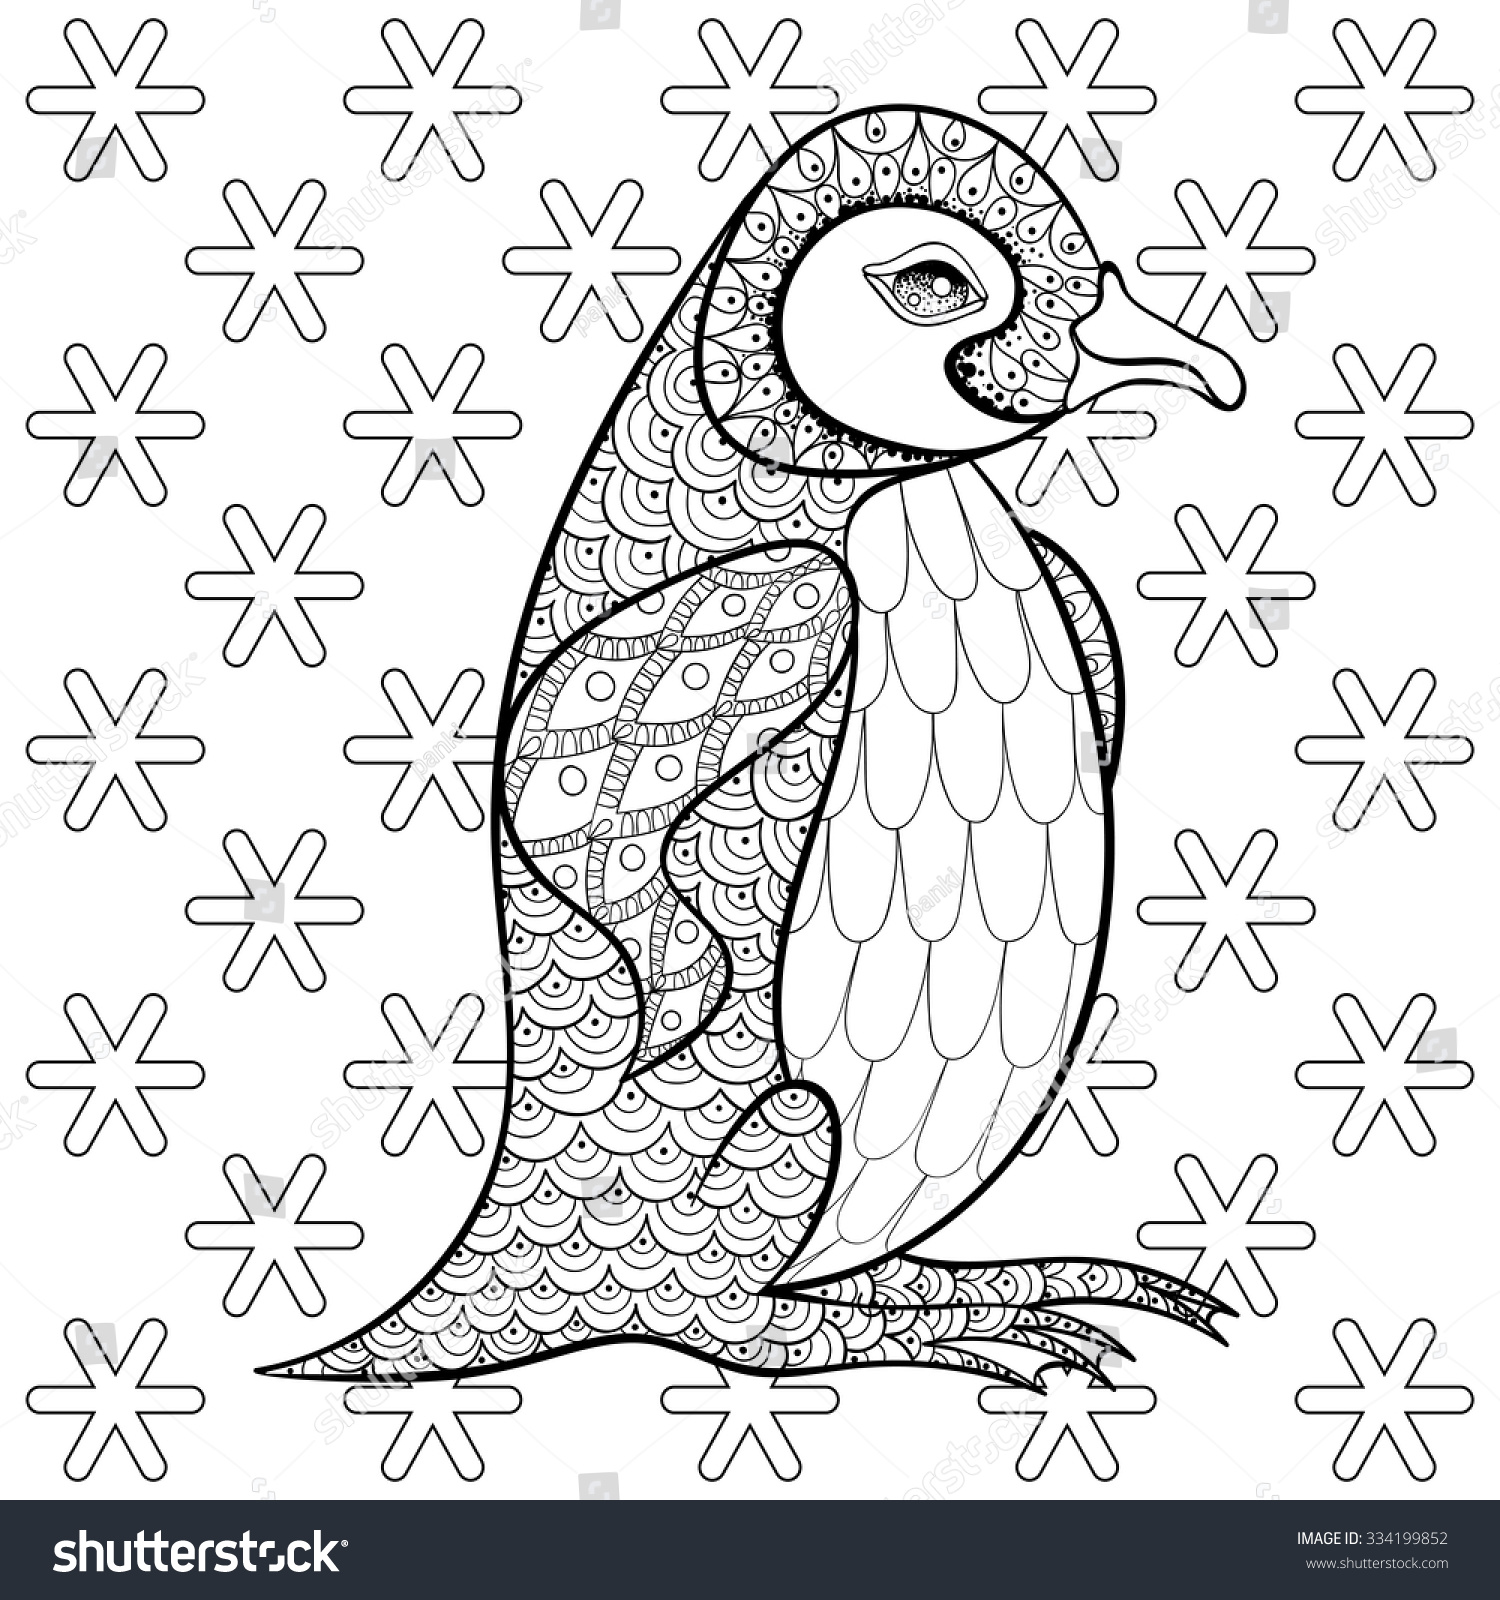 Coloring Pages With King Penguin Among Snowflakes Zentangle Illustration For Adult Anti Stress Books